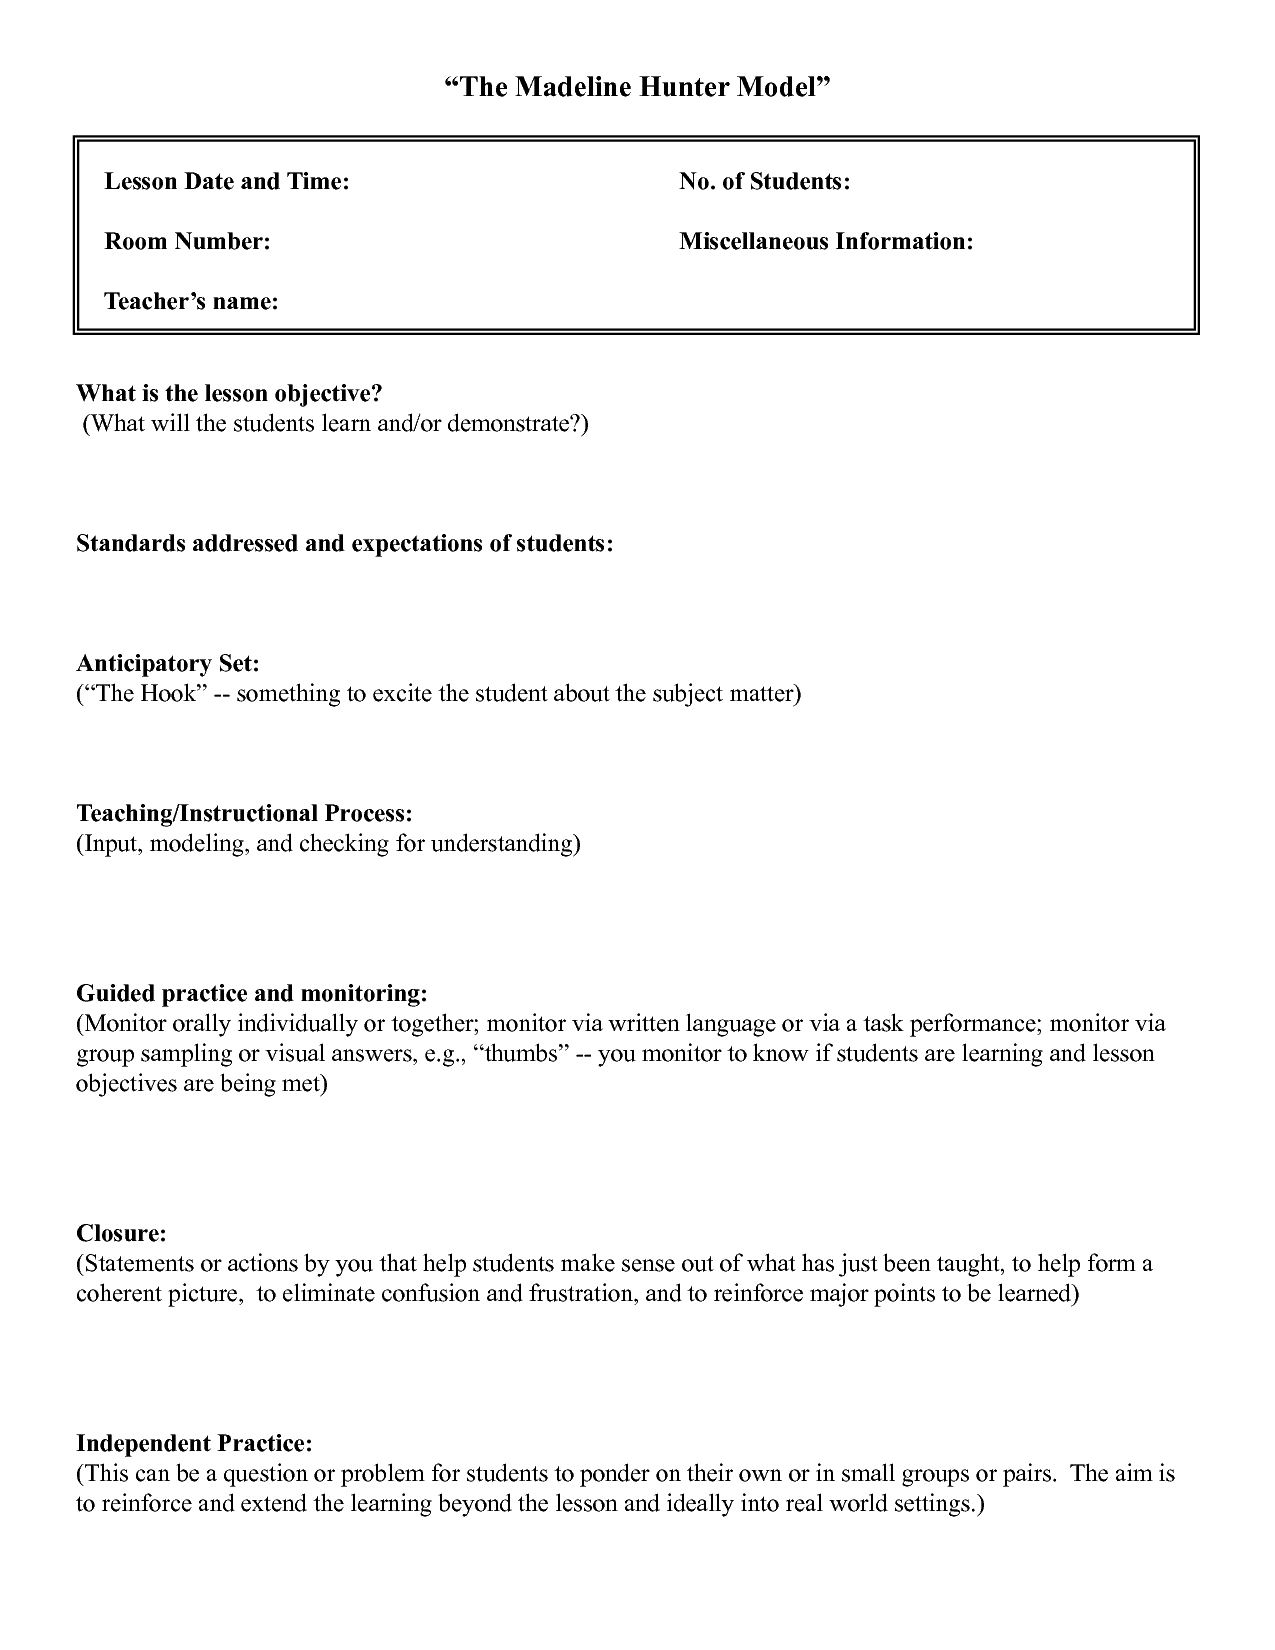 Madeline Hunter Lesson Plan Template Madeline Hunter Lesson Plan - Best lesson plan template